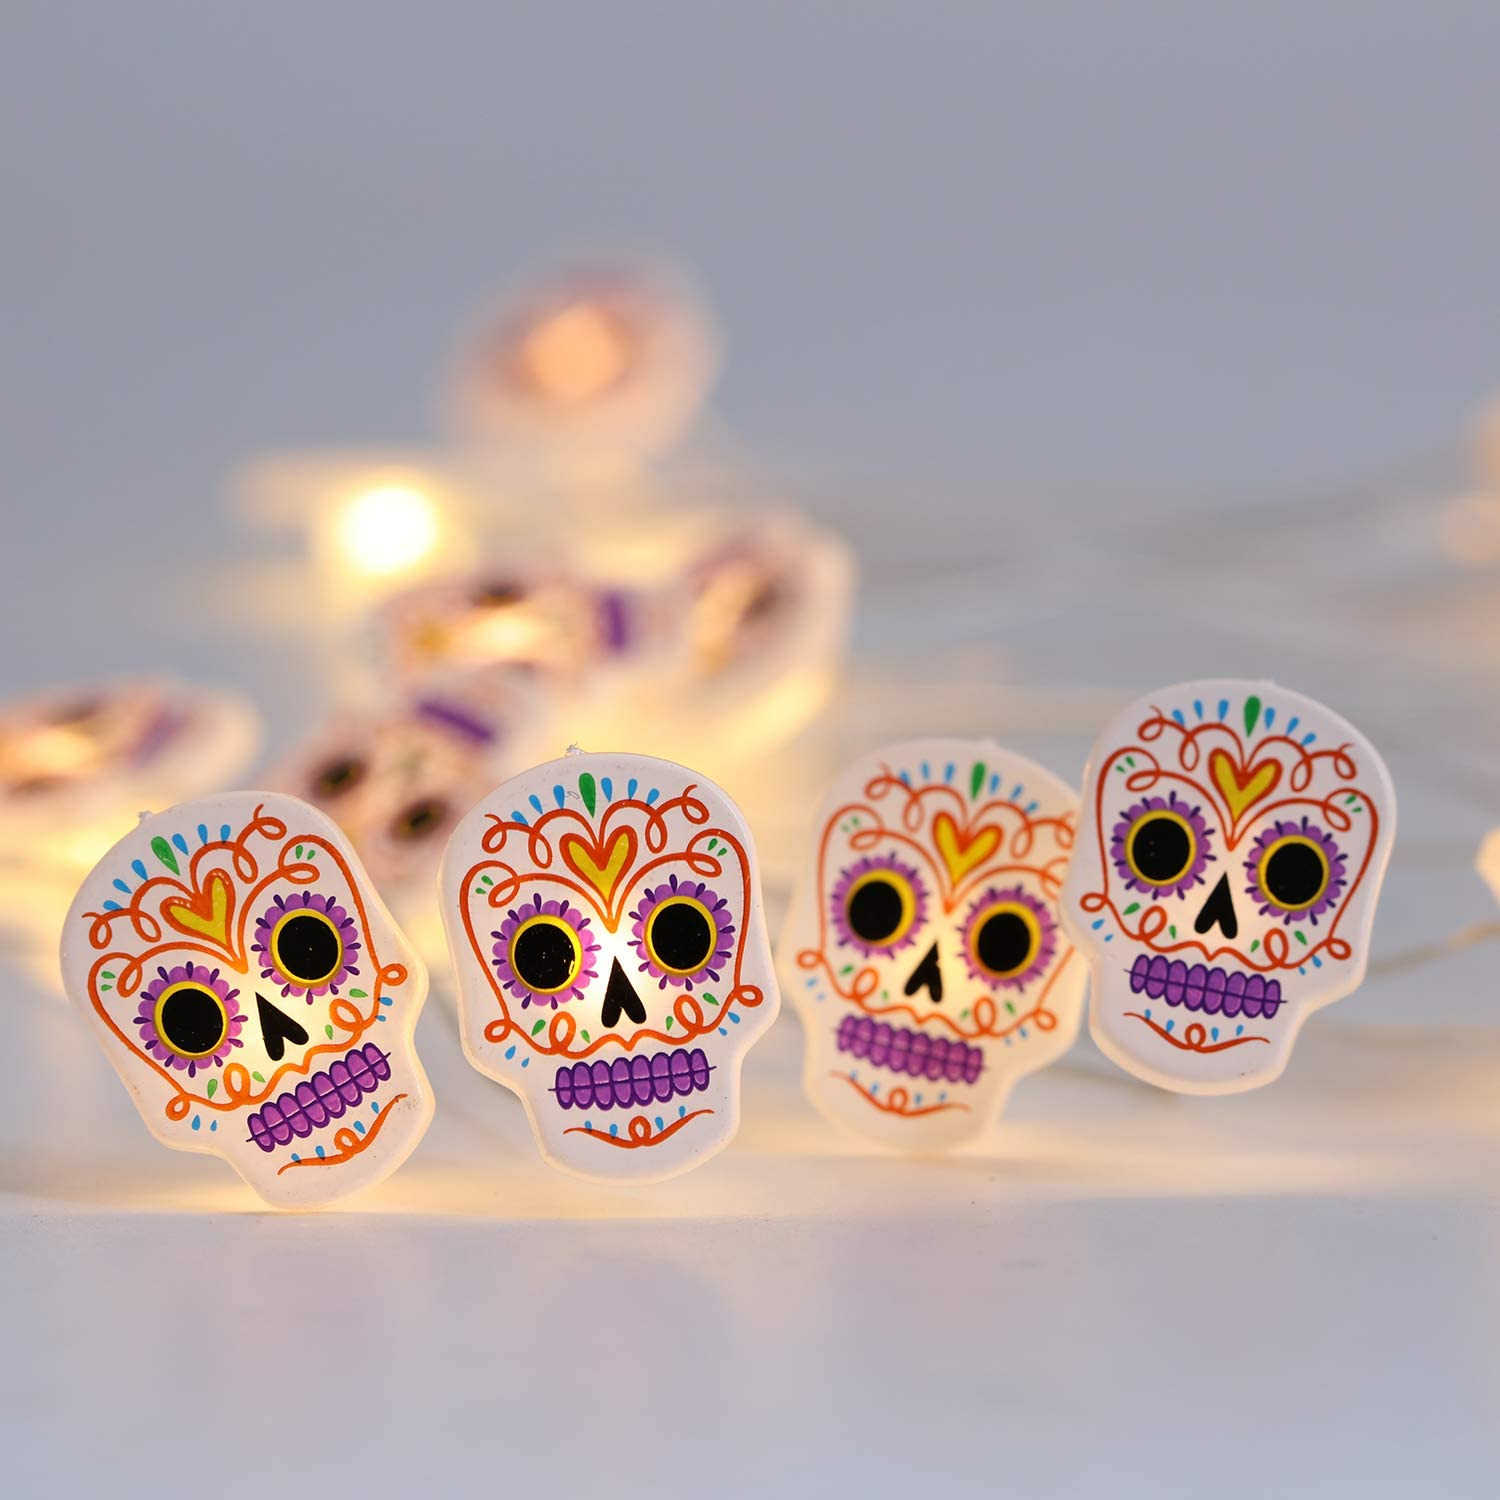 MYTH REALM Halloween Skull String Lights, 20 LED, Battery Operated, Timer, Mexican Calavera Pattern, Decorative Lights for Halloween Party, Scenes, Haunted House